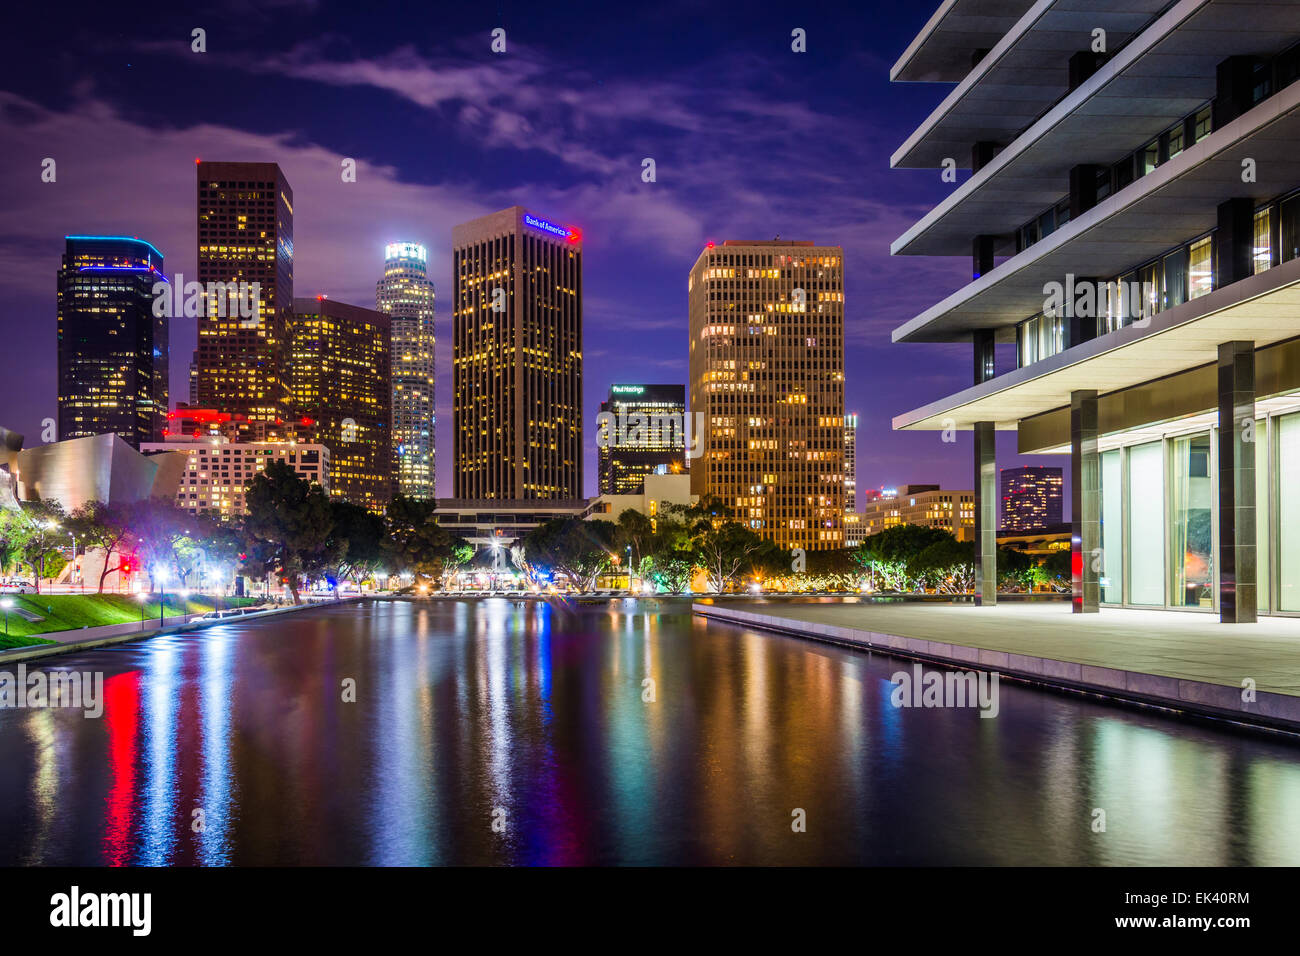 The Los Angeles Department of Water and Power Building and the downtown Los Angeles skyline at night, in Los Angeles, Stock Photo